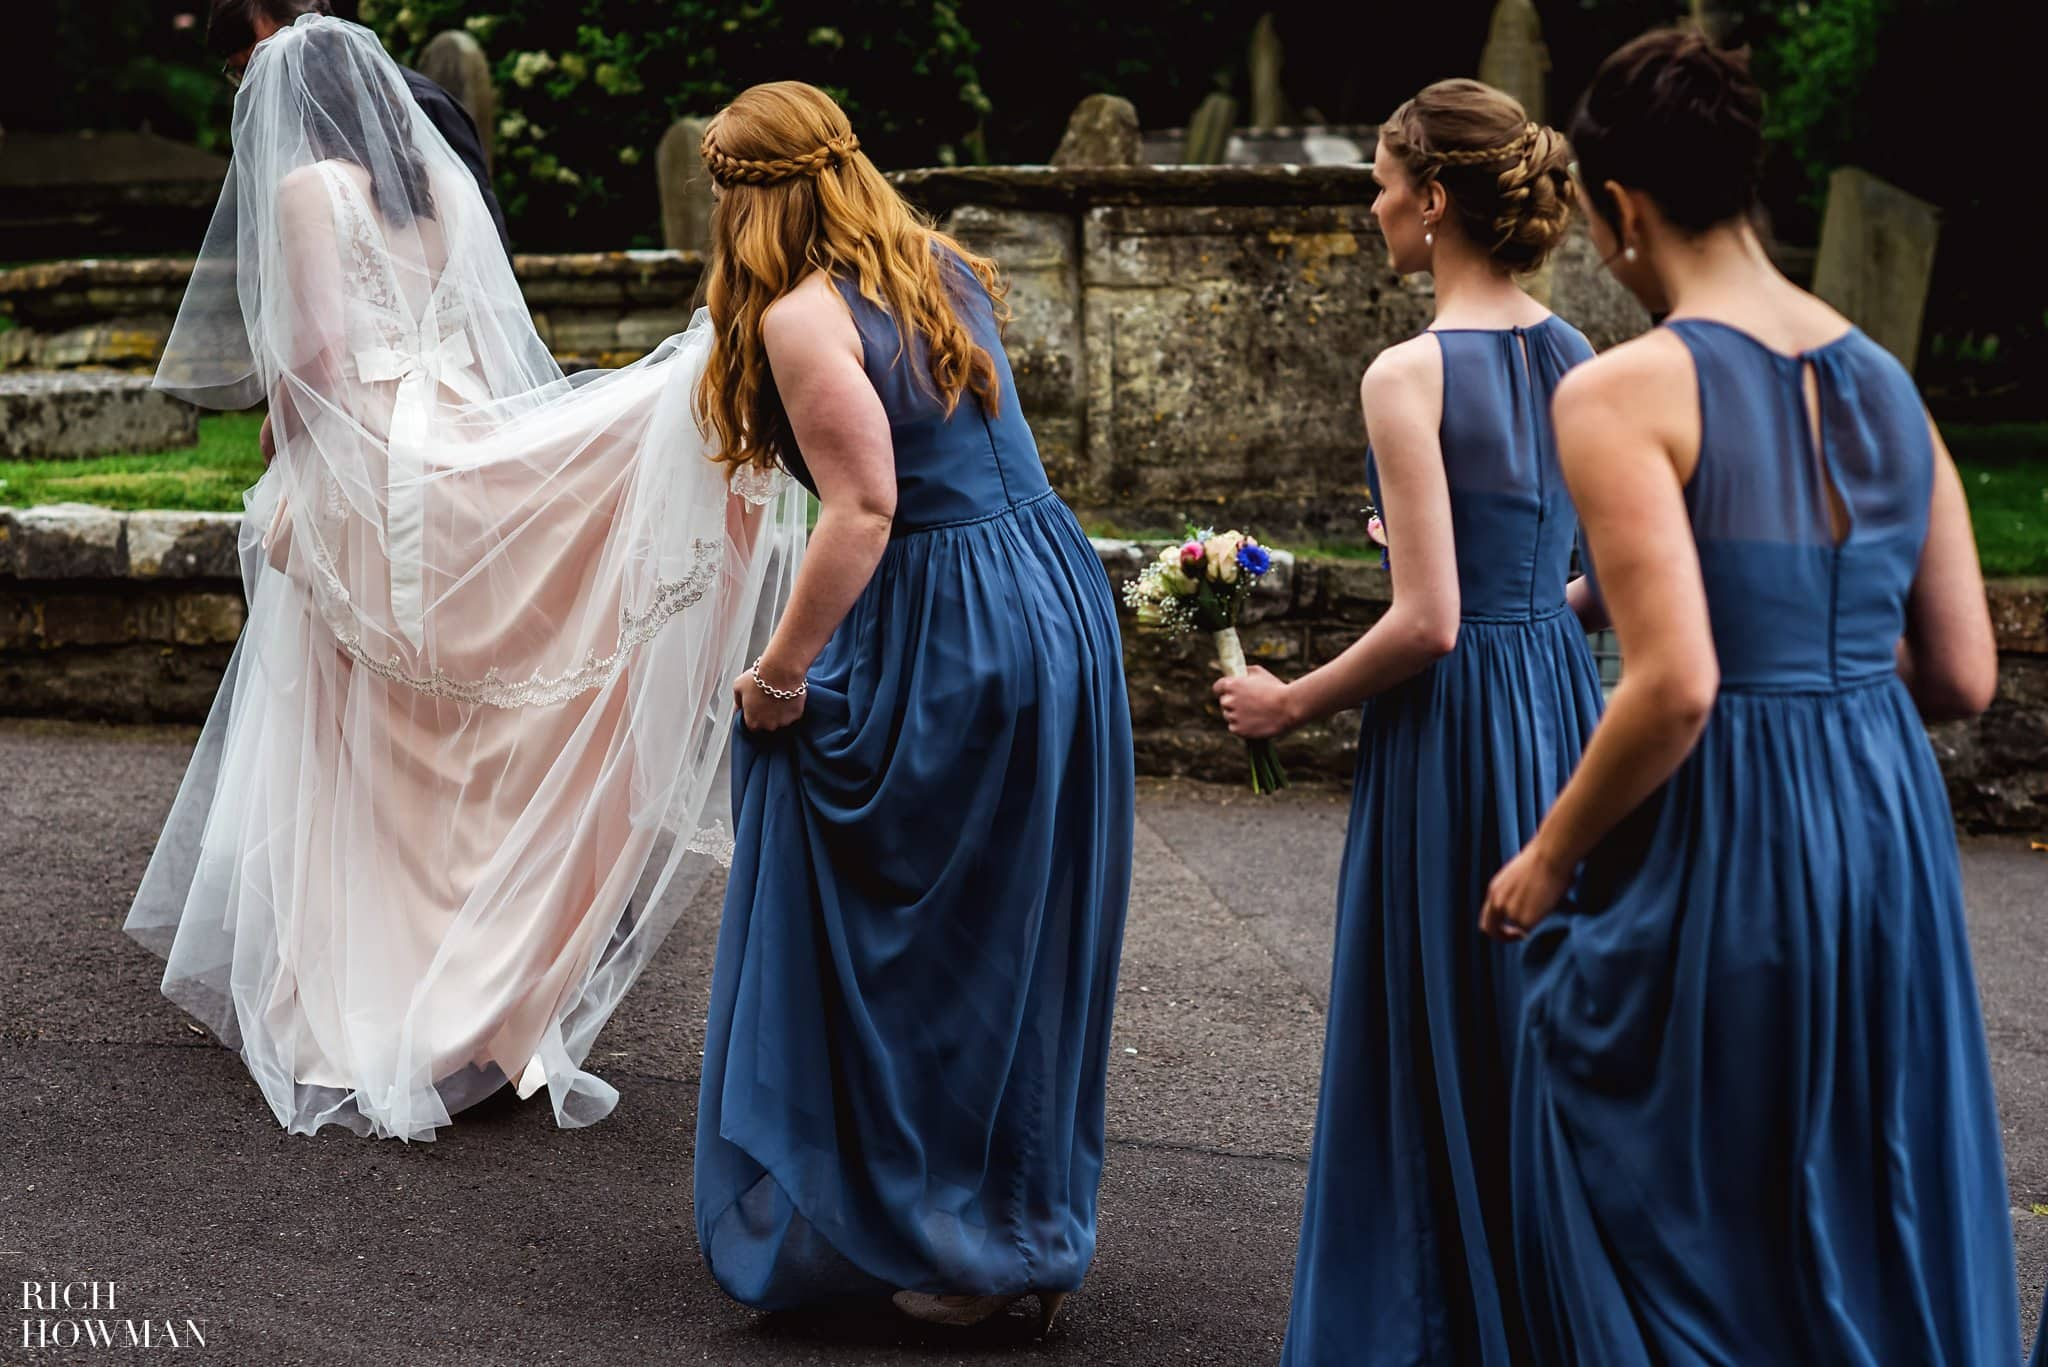 Bridesmaids in blue helping the bride with her dress before her wedding at